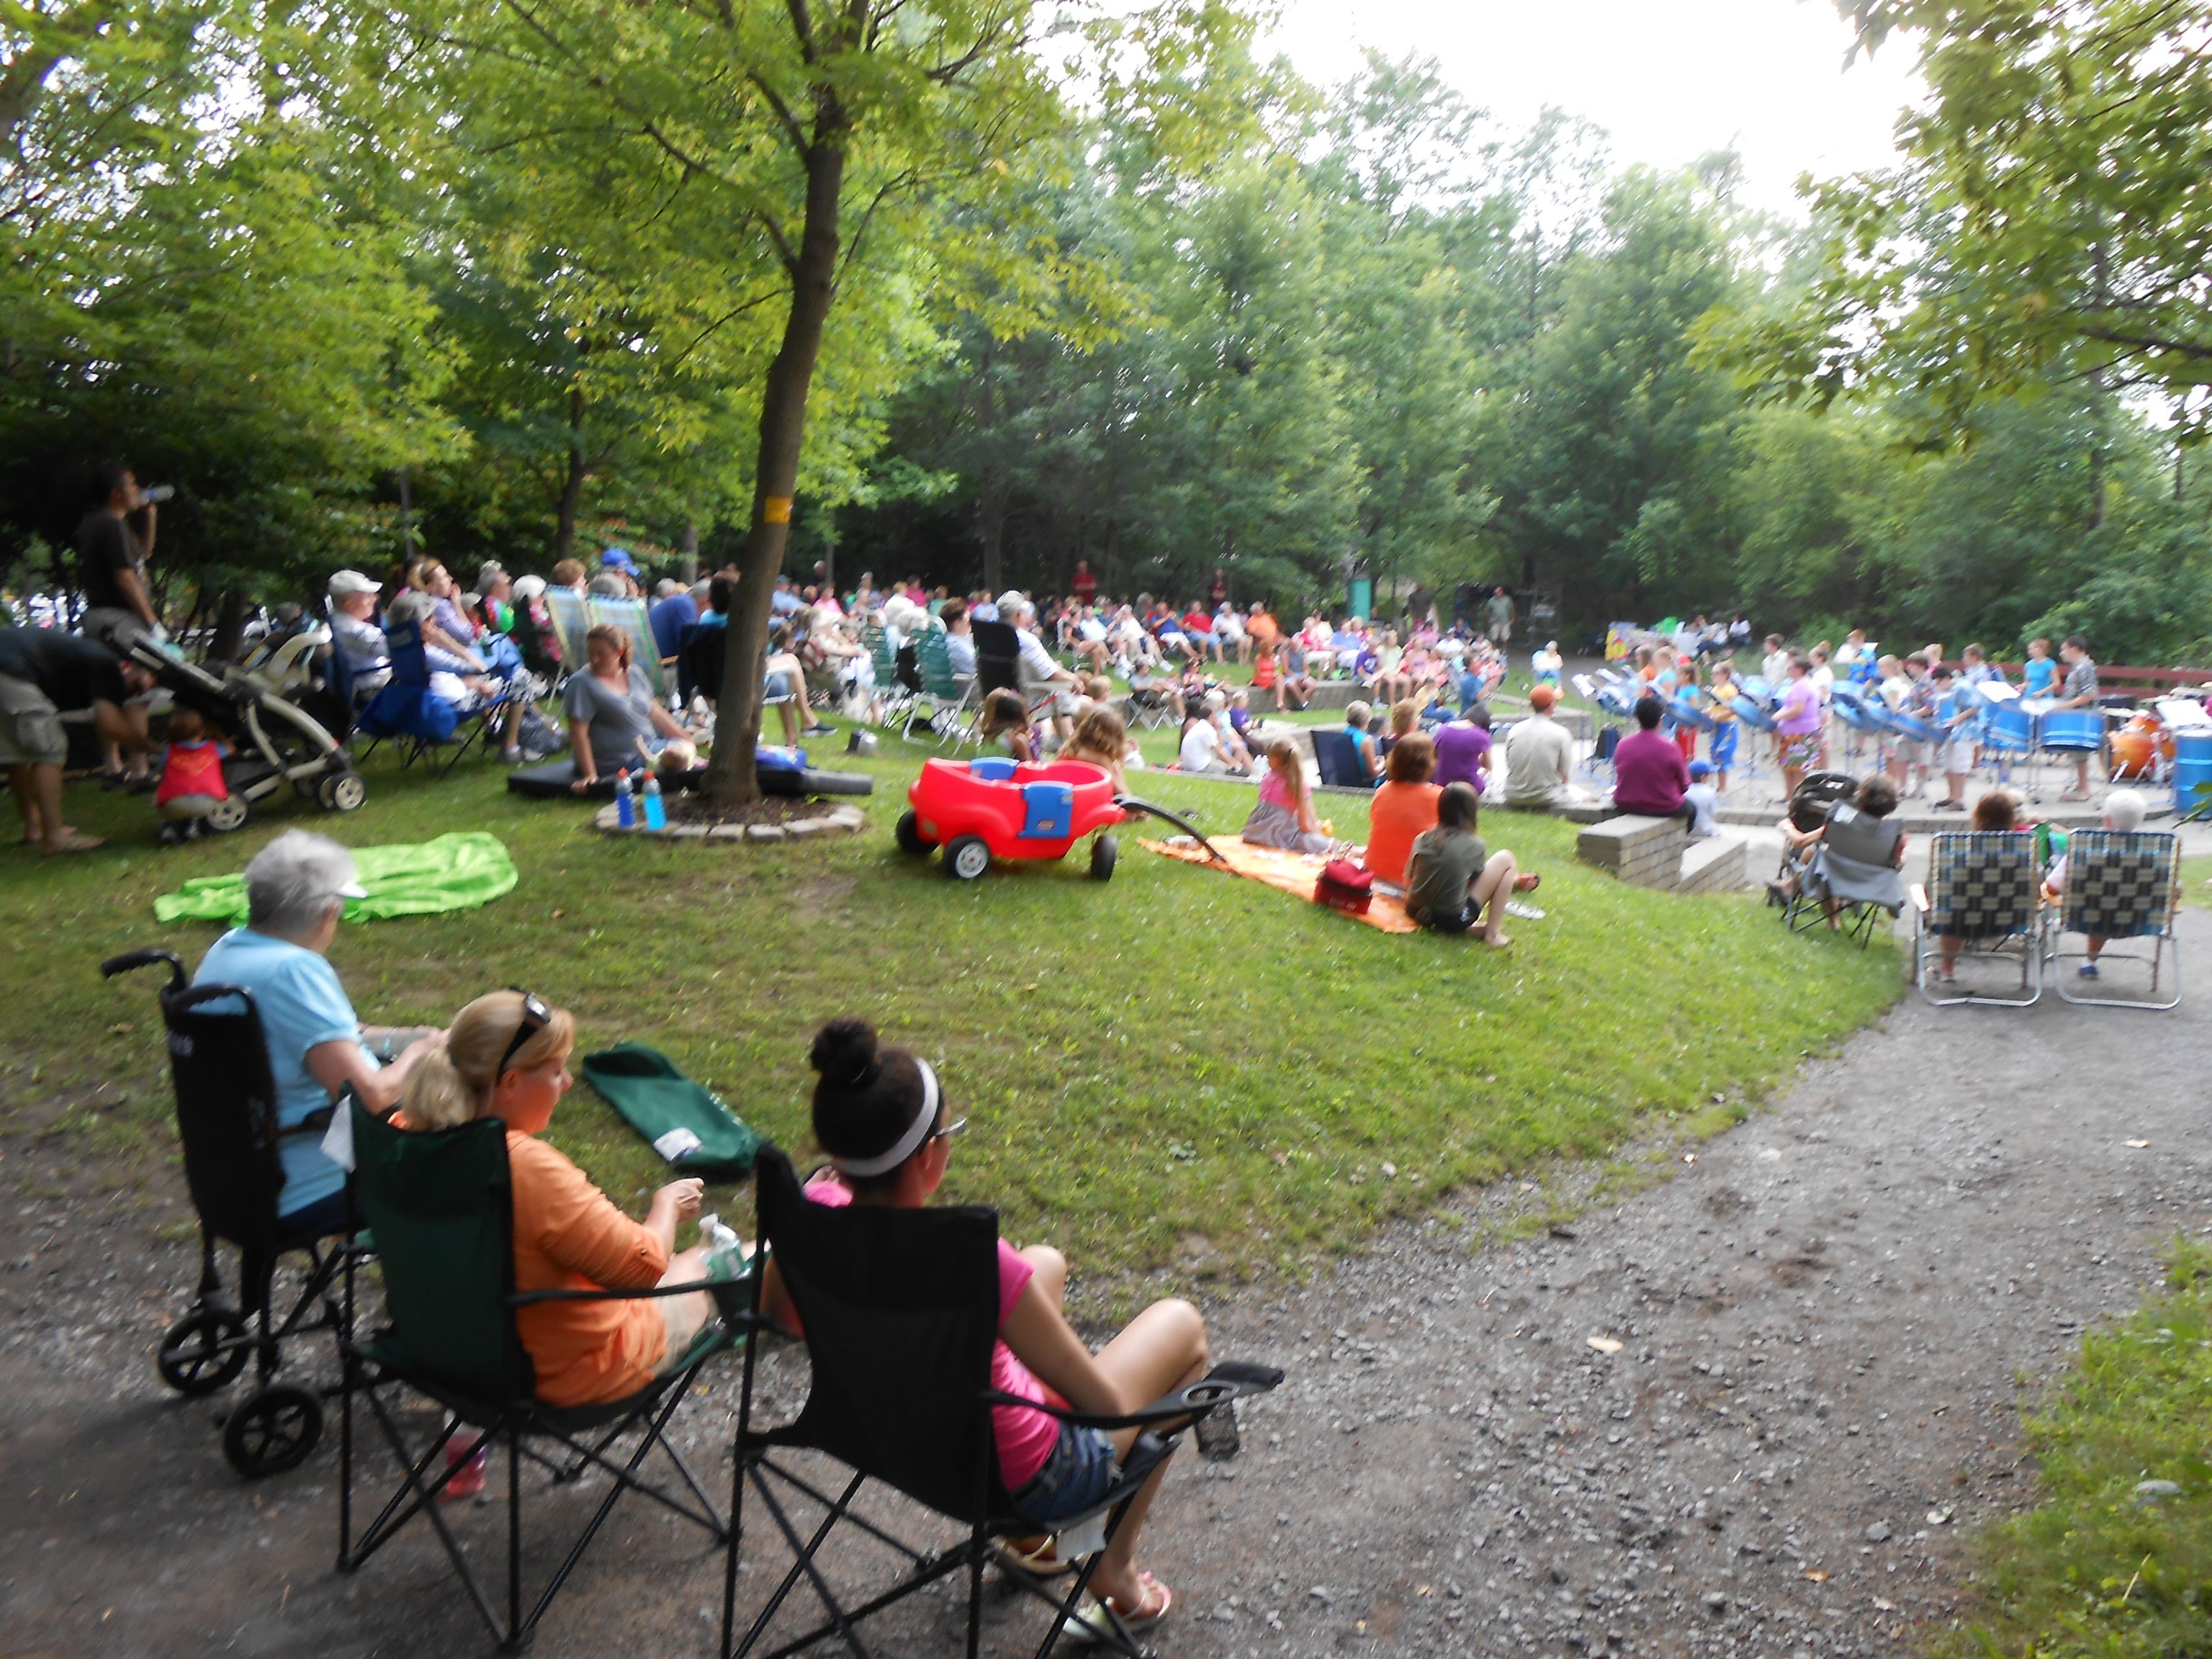 Concertgoers attend a concert at the Burchfield Nature and Art Center. (Photo courtesy of the Burchfield Nature and Art Center)